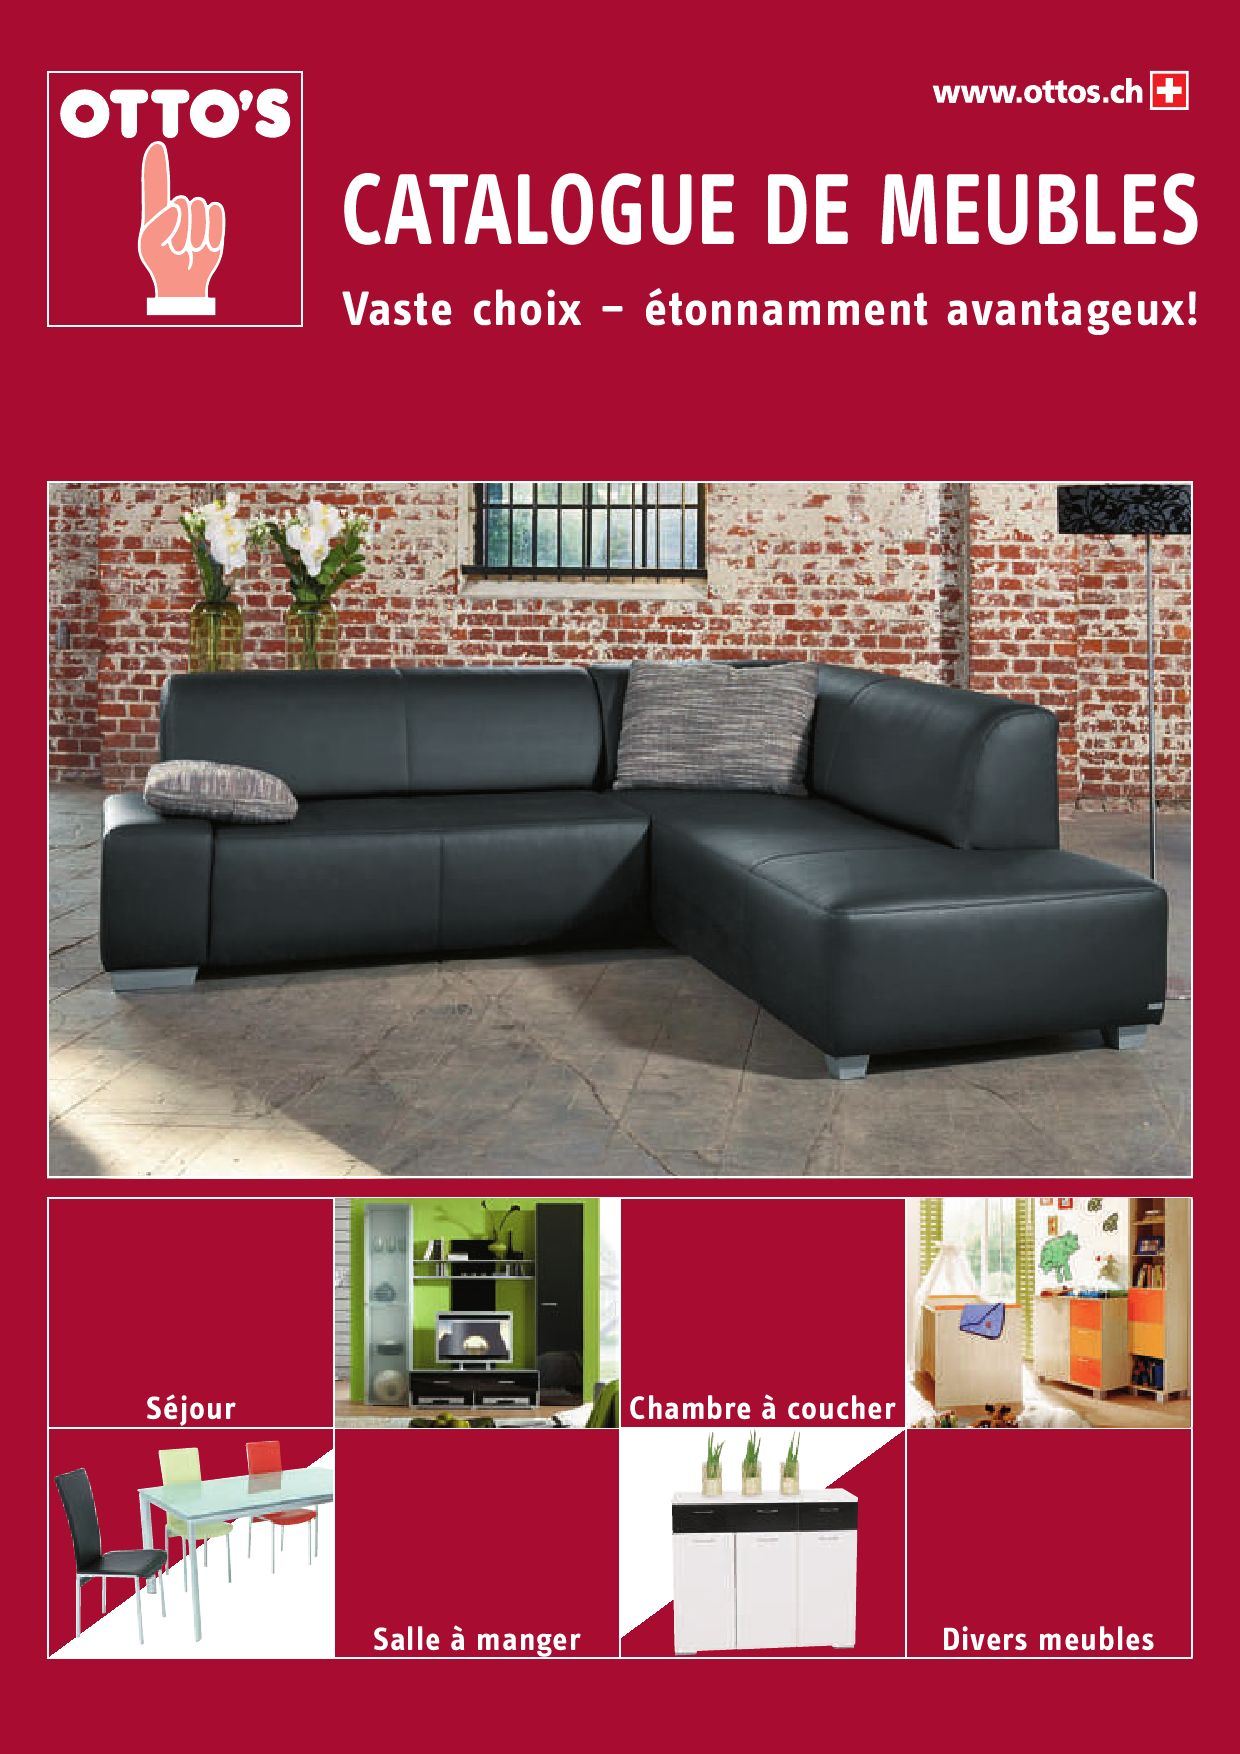 otto 39 s catalogue de meubles 09 by ottos ag switzerland issuu. Black Bedroom Furniture Sets. Home Design Ideas